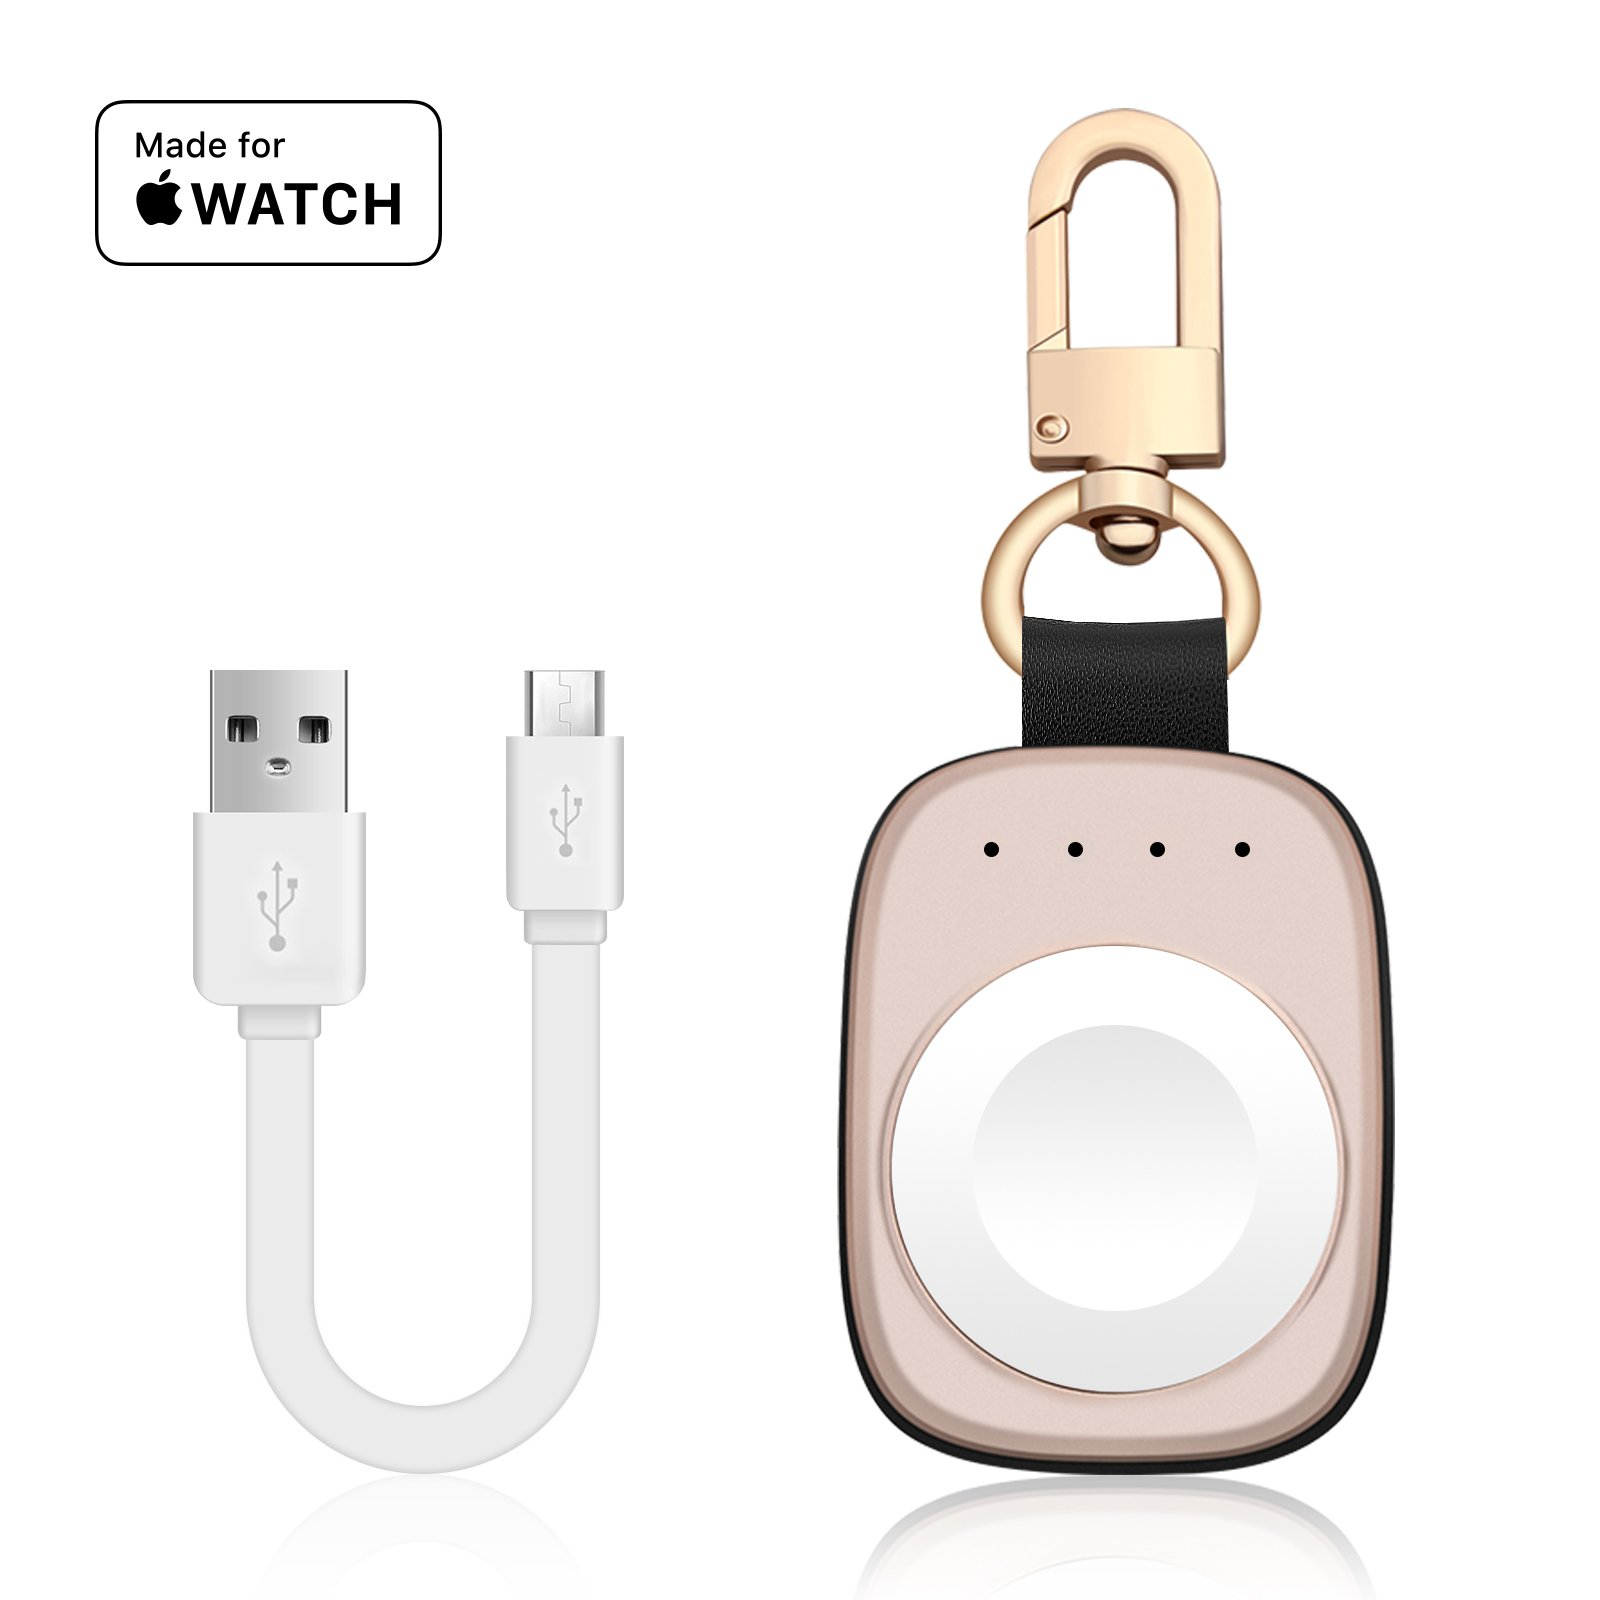 FLAGPOWER Portable Charger for Apple Watch, [MFi Certified] Pocket Sized Travel Wireless Charger 700mAh Smart Keychain Power Bank for Apple Watch Series 4/3/2/1/Nike+ by FLAGPOWER